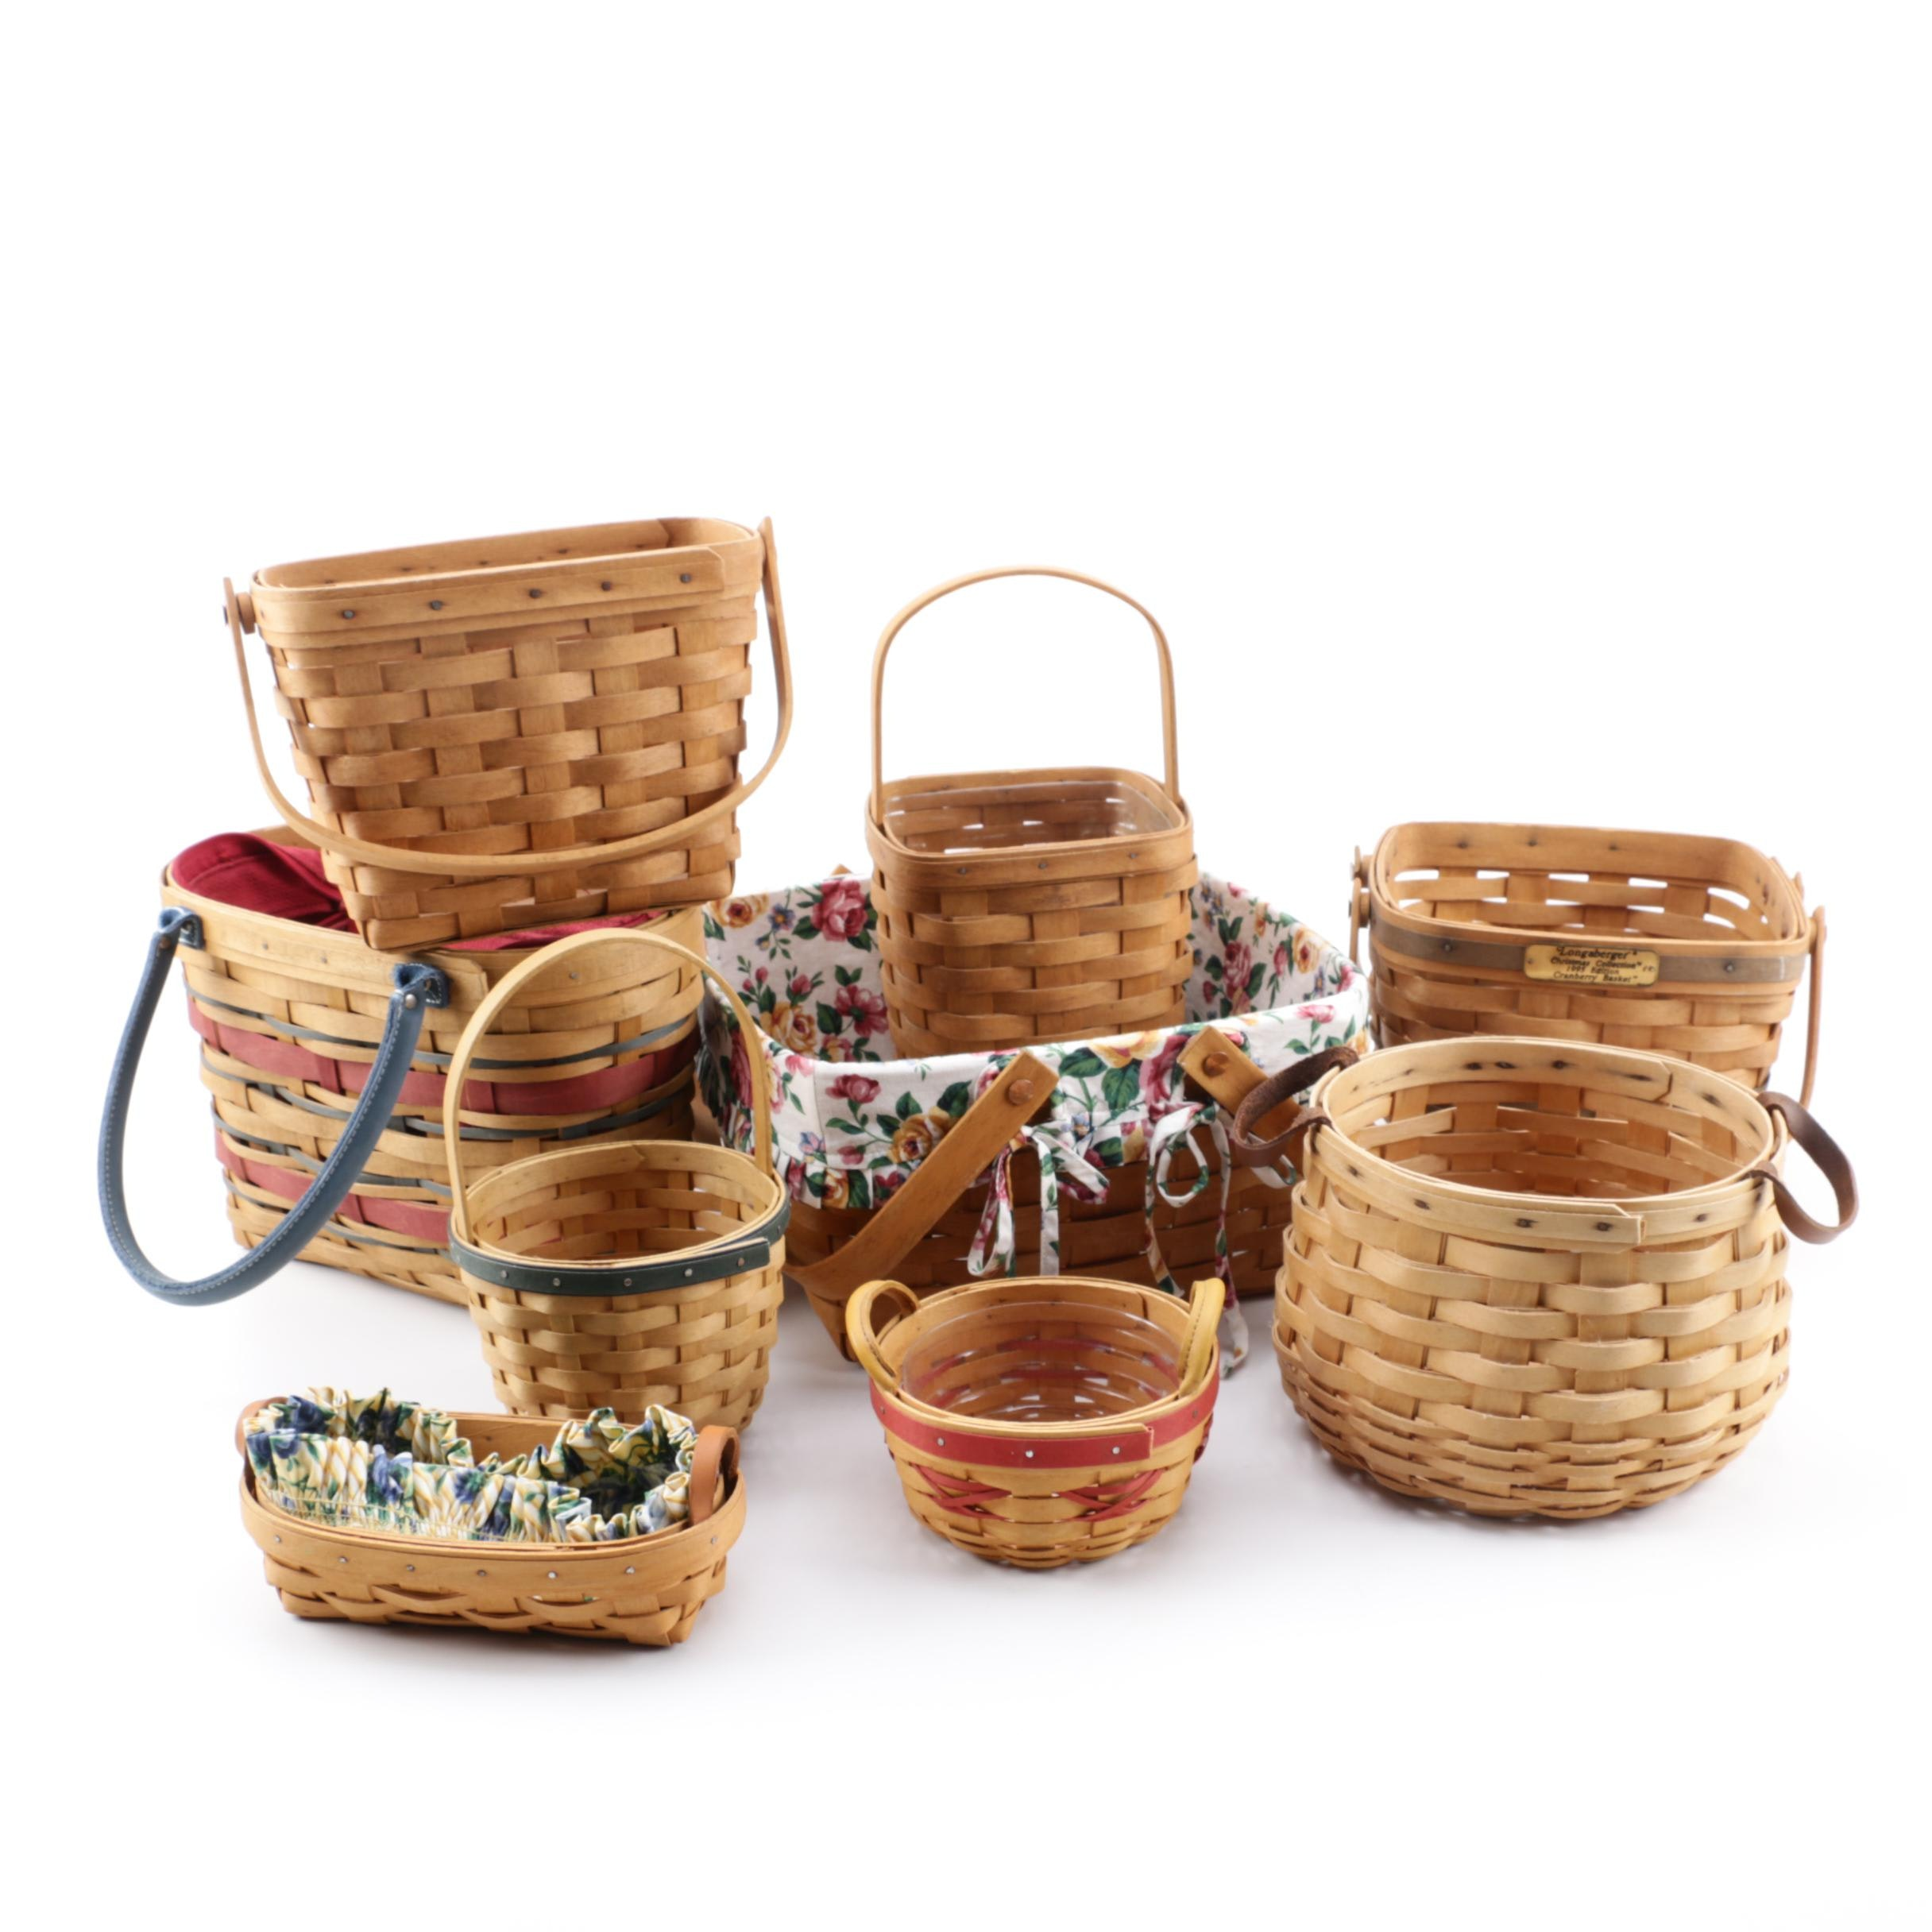 Longaberger Baskets including Liners and a Carnation Baskets Brand